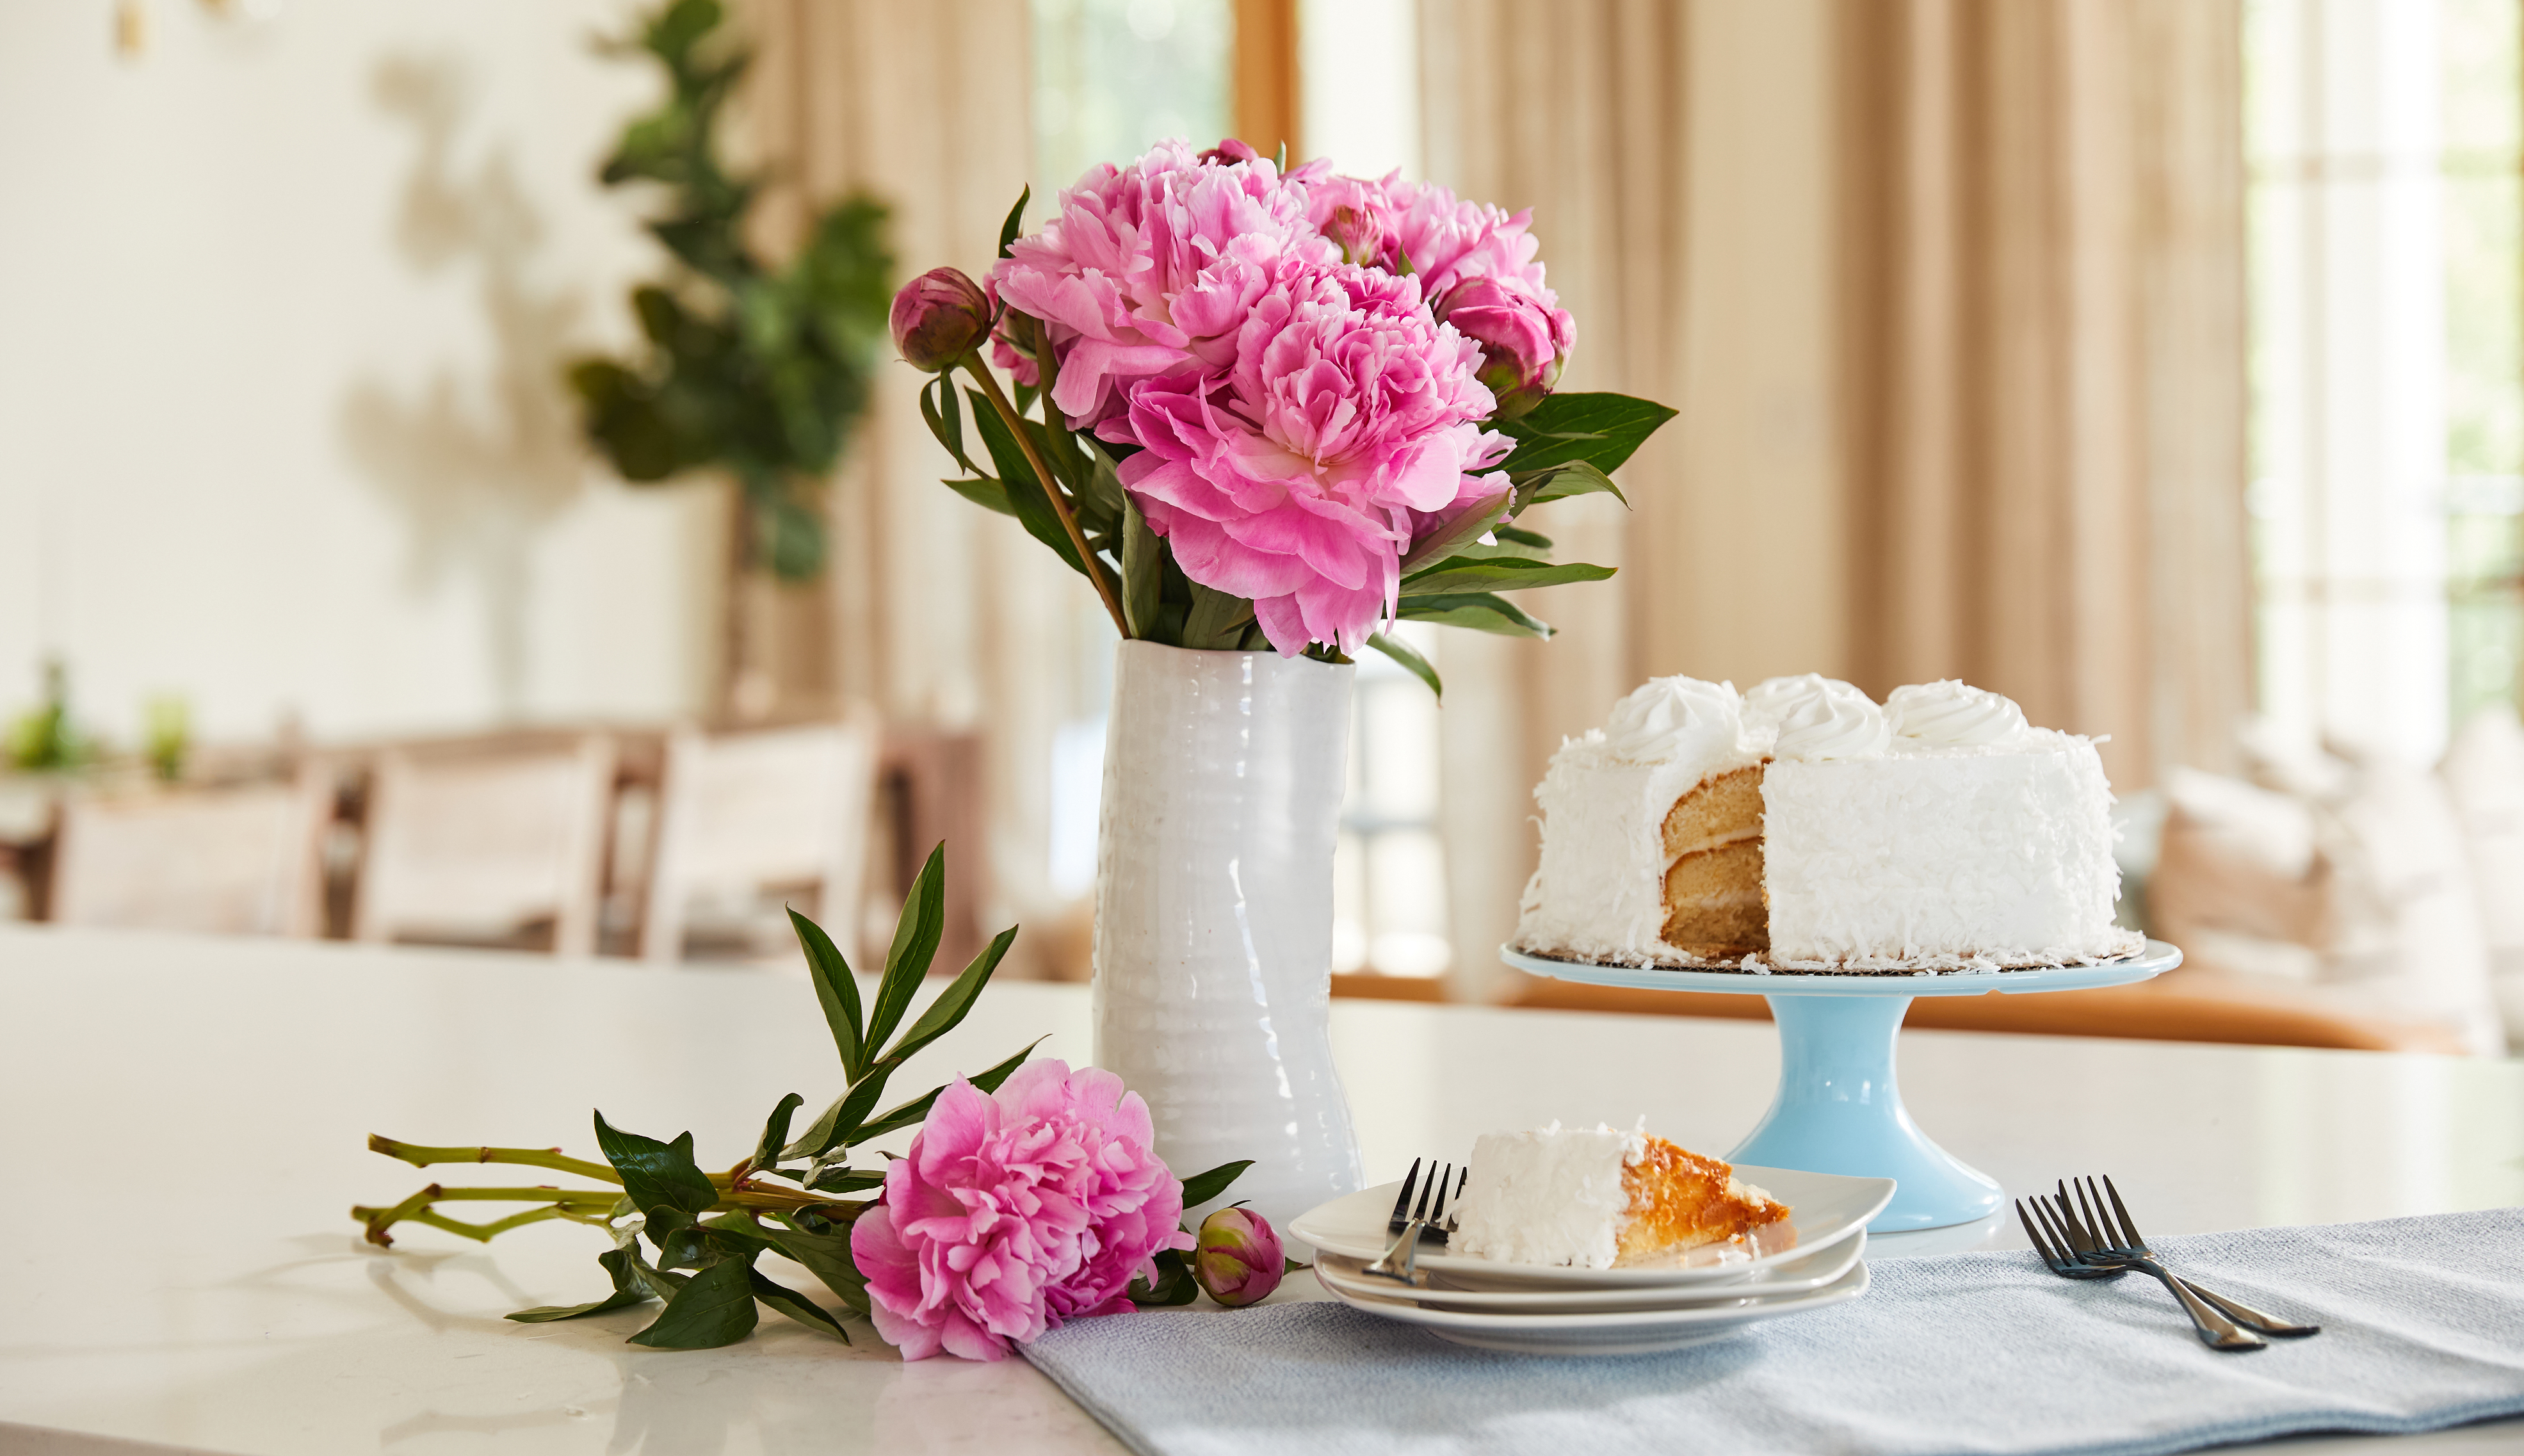 Birthday flower bouquet of bright pink peonies on a table with a white frosted birthday cake